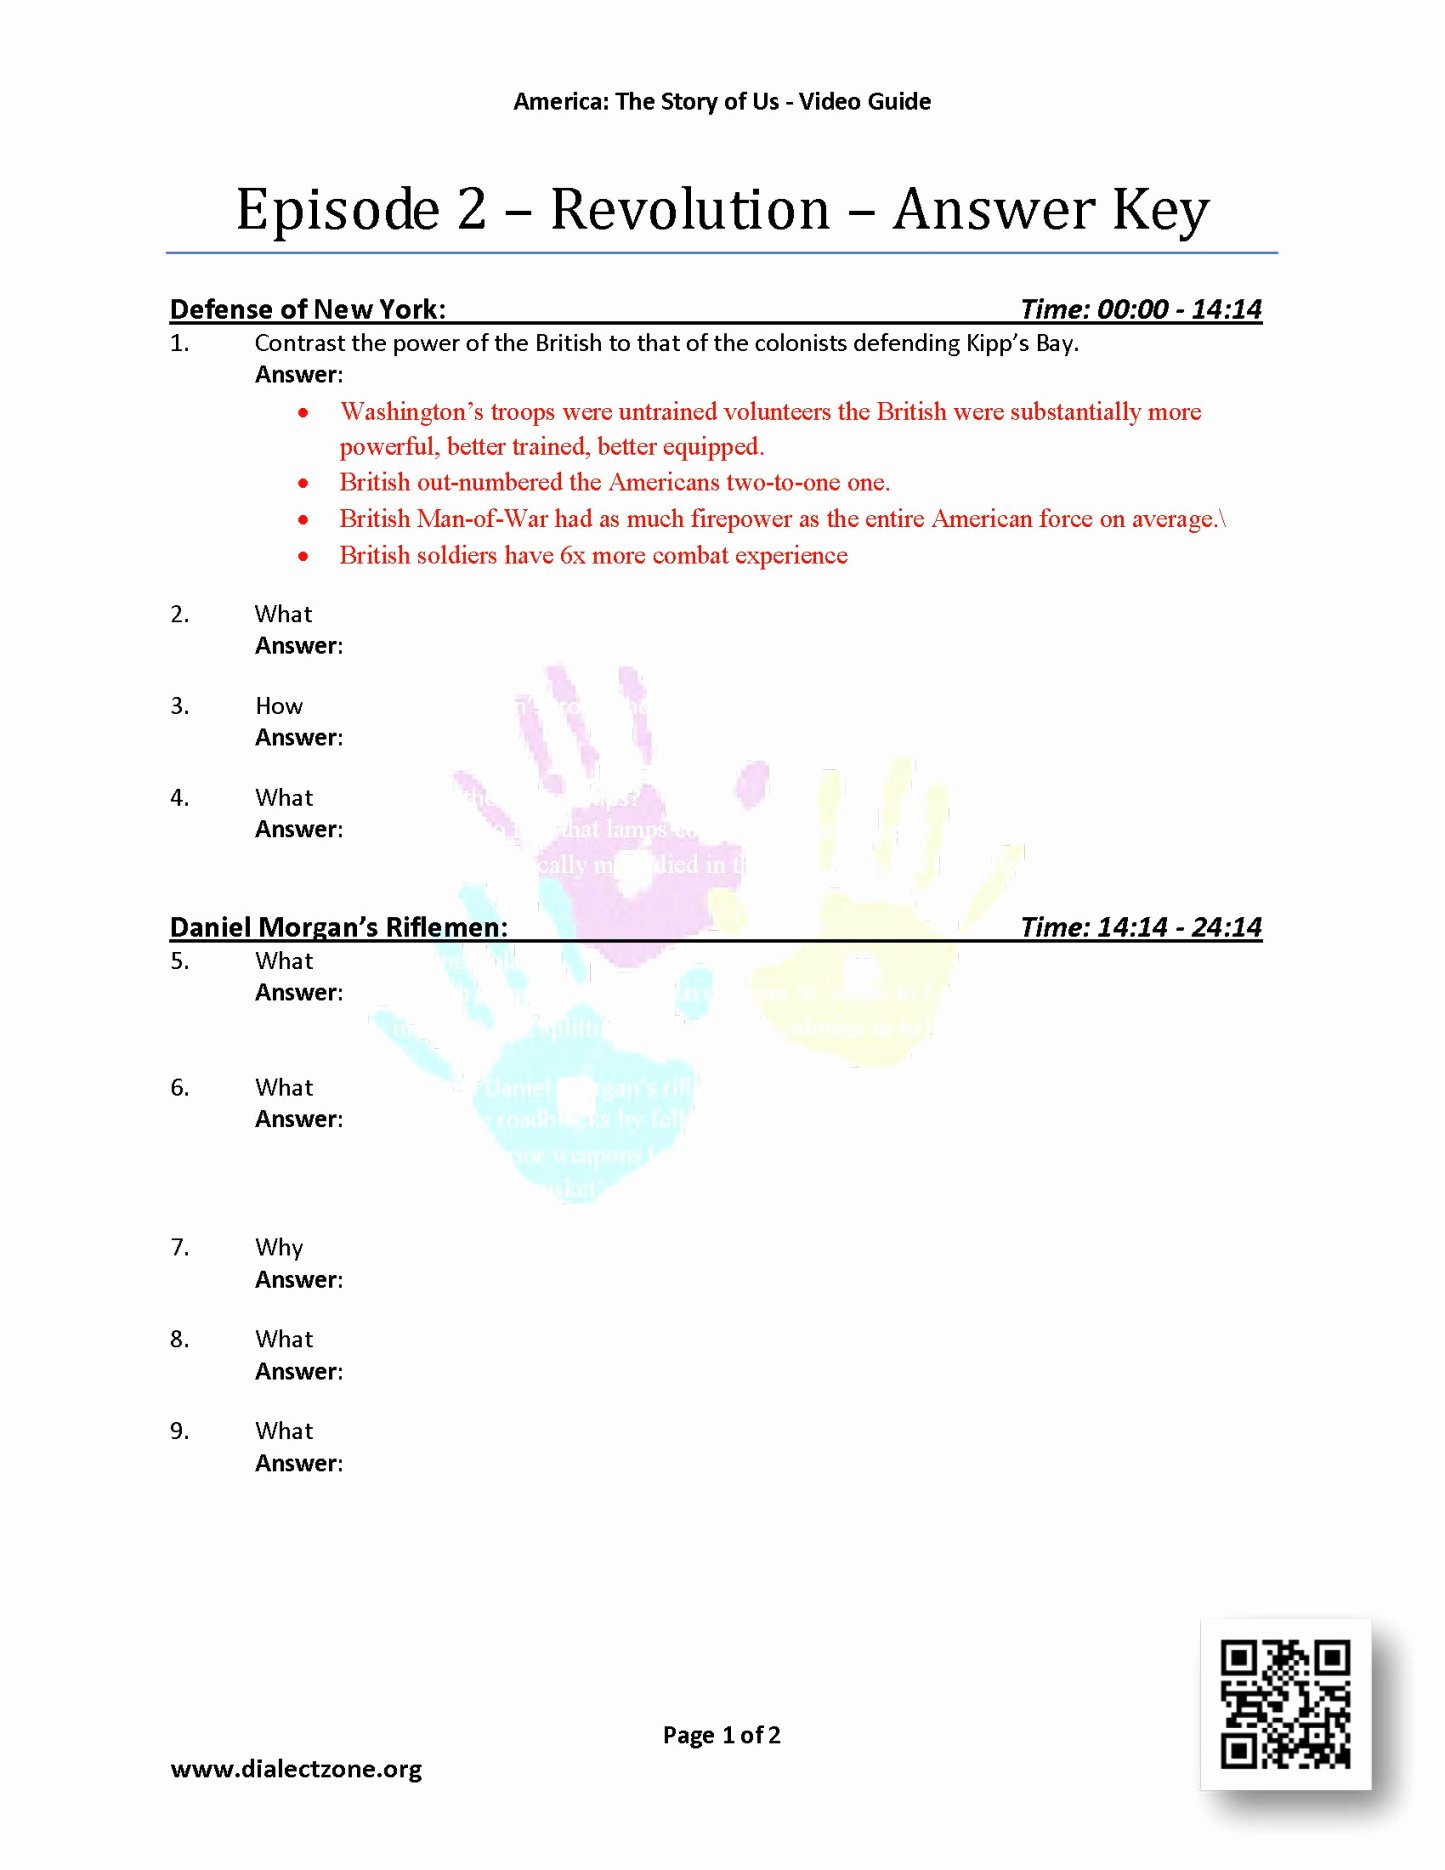 Episode  2 Revolution Worksheet Answers  Slubnesuknie With America The Story Of Us Episode 8 Worksheet Answer Key